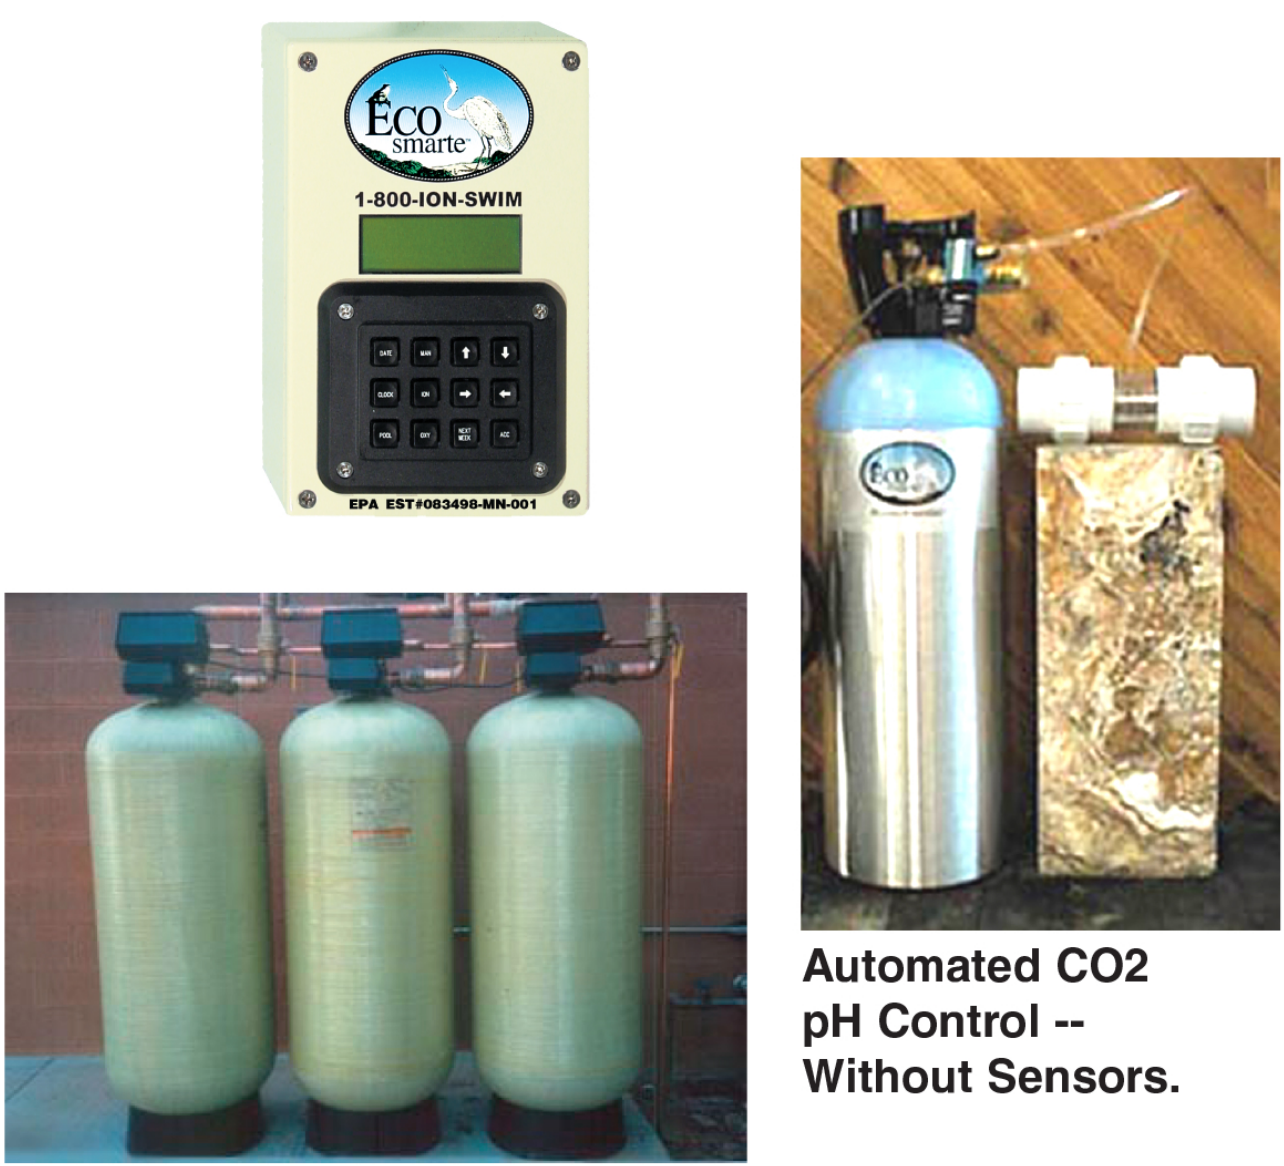 ECOsmarte control panel, CO2 system, and tanks.